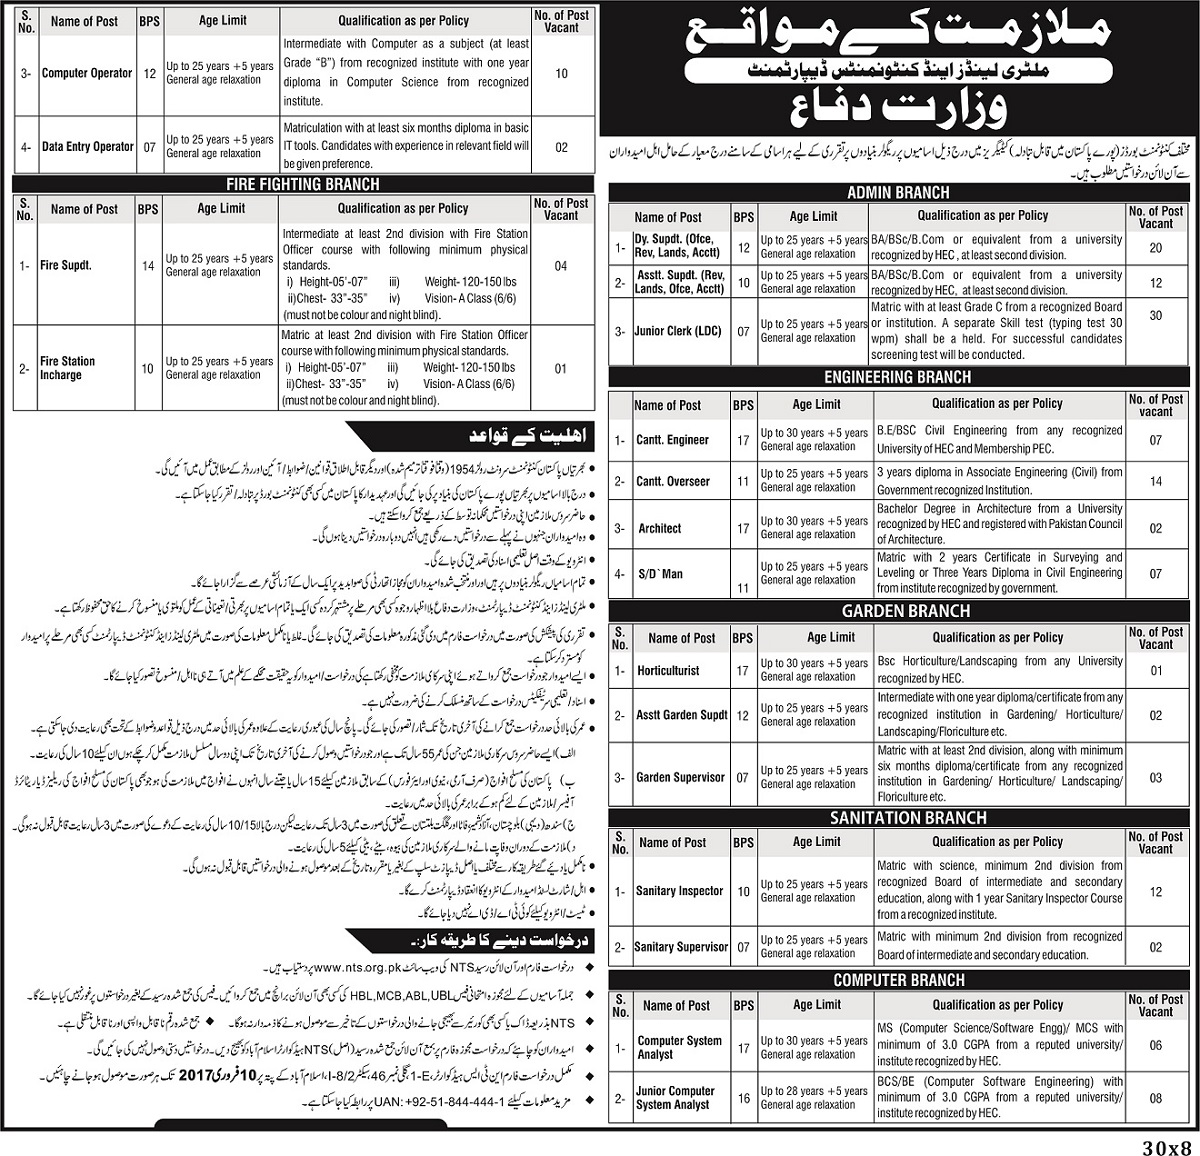 Military Land & Cantonment Department Ministry of Defence Jobs Download NTS Applications Form Criteria Apply Procedure